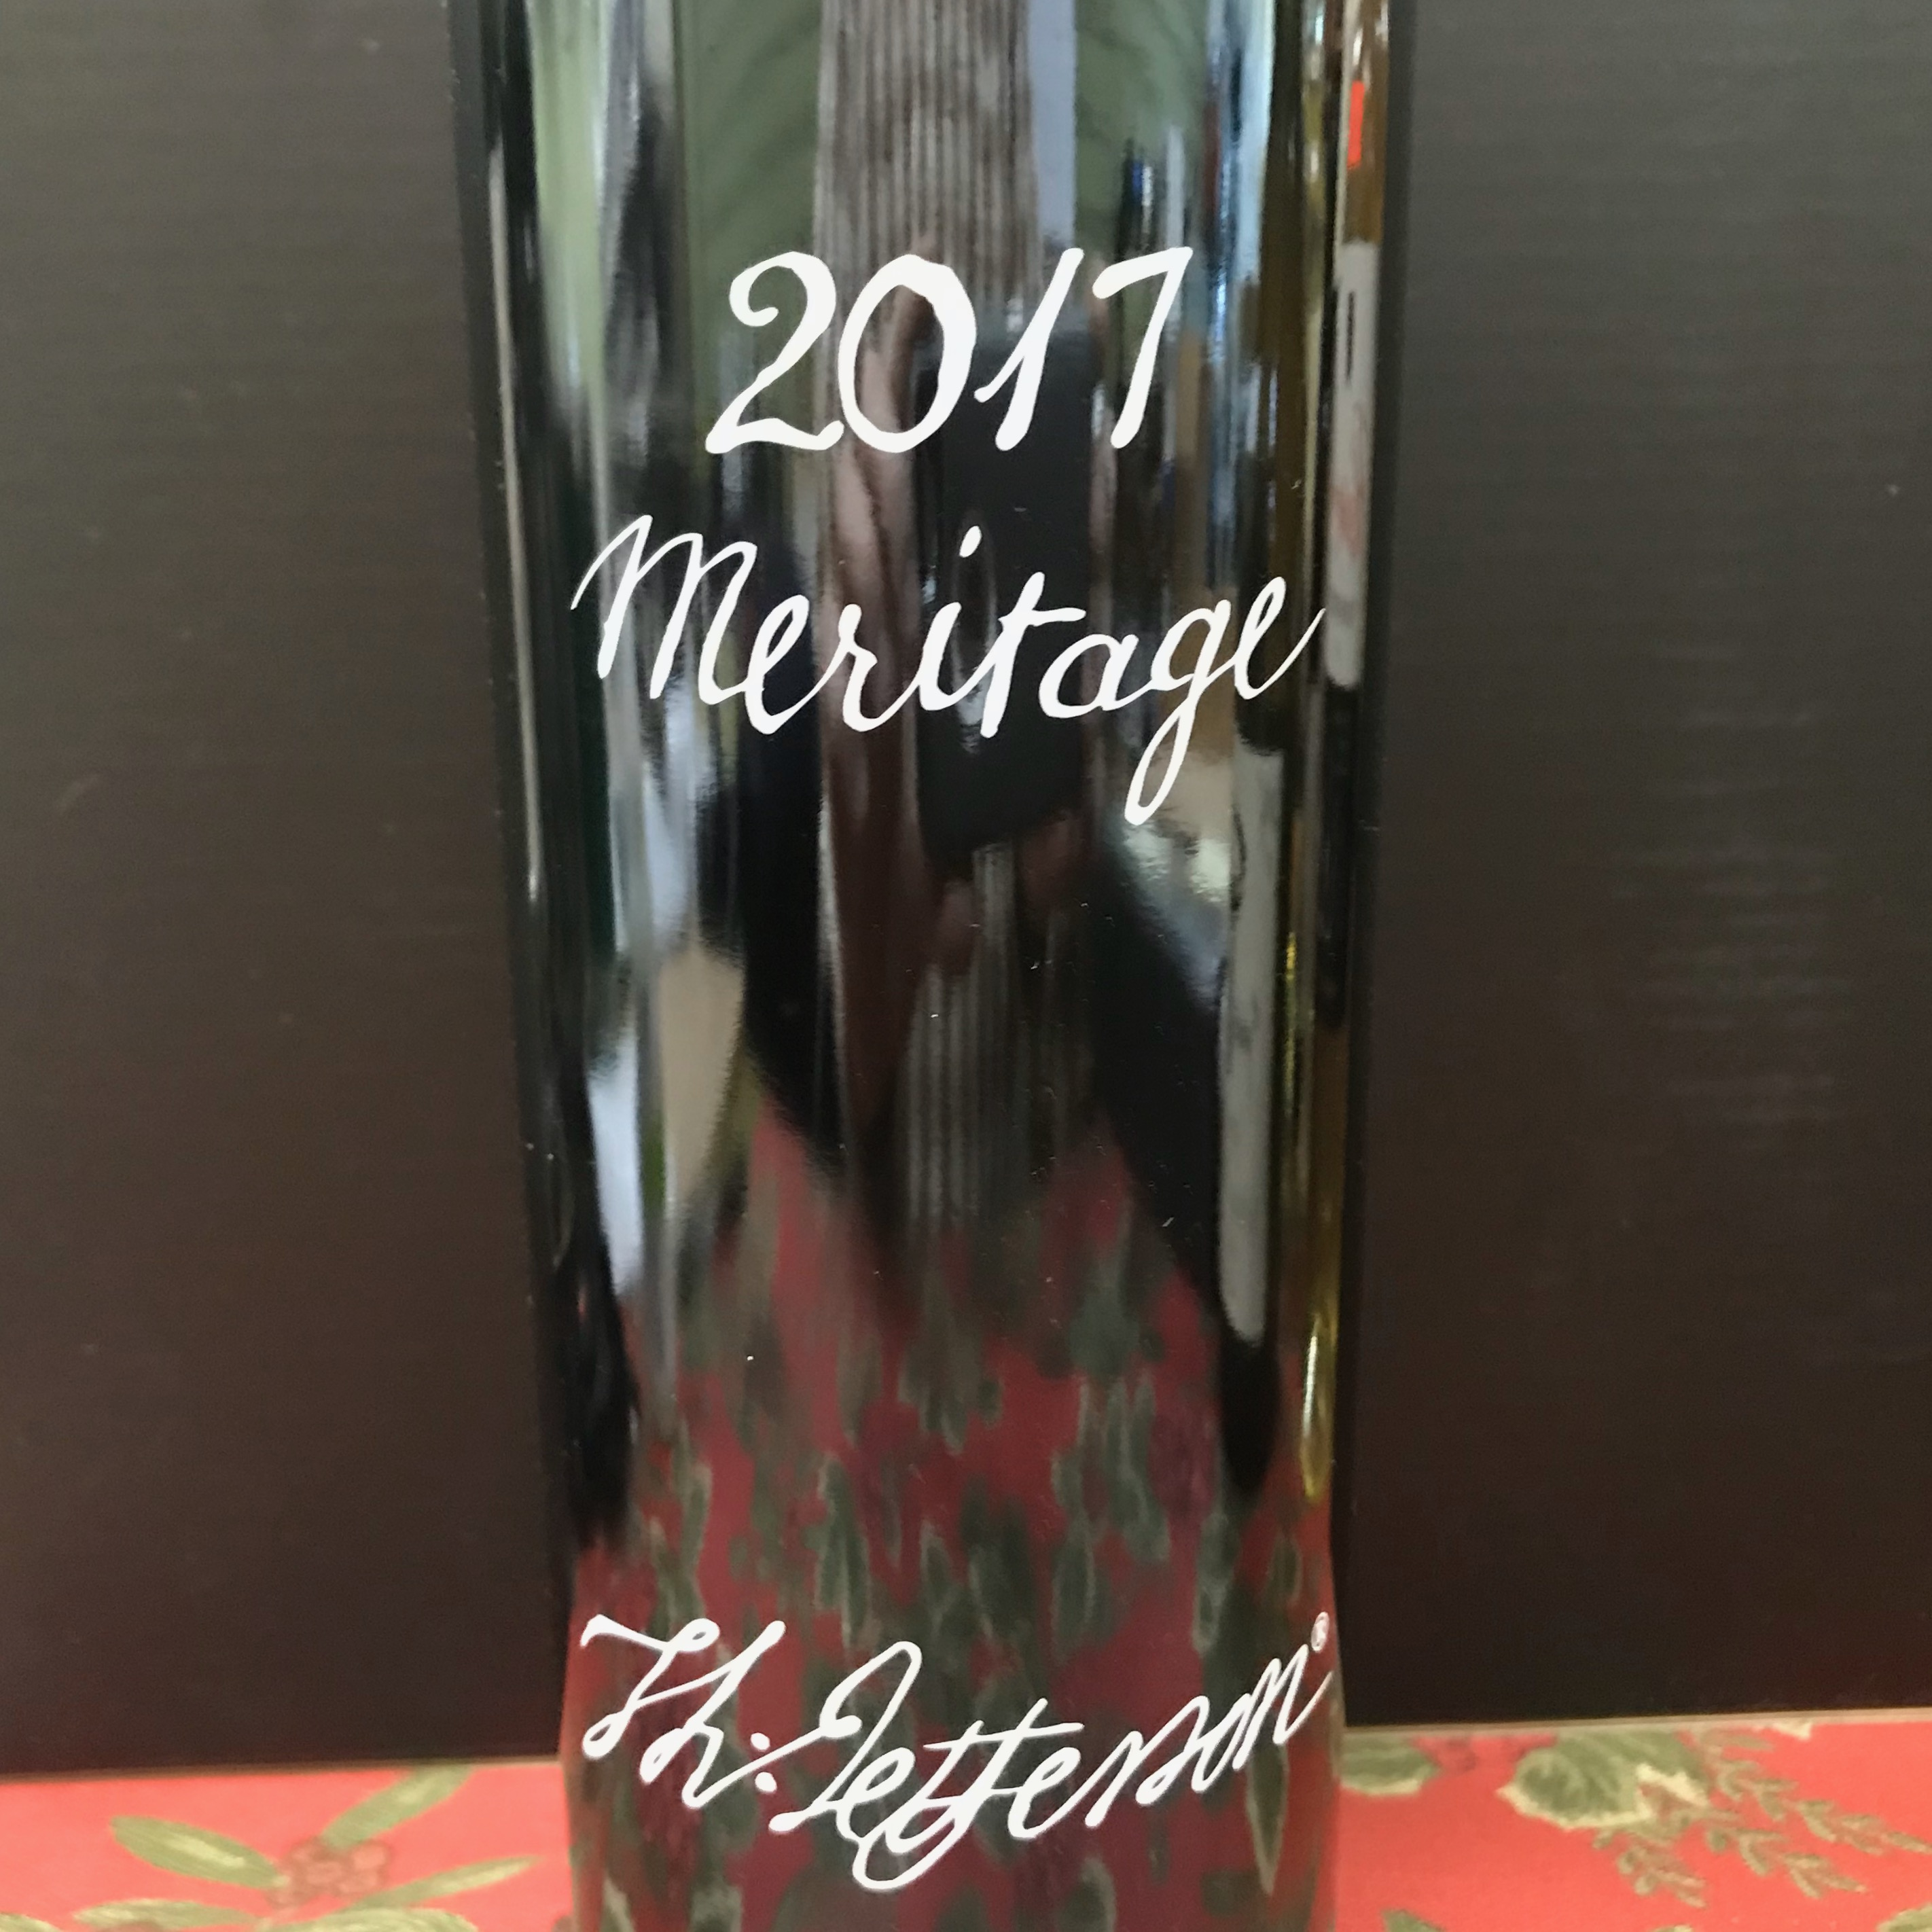 Jefferson Vineyards Meritage 2017